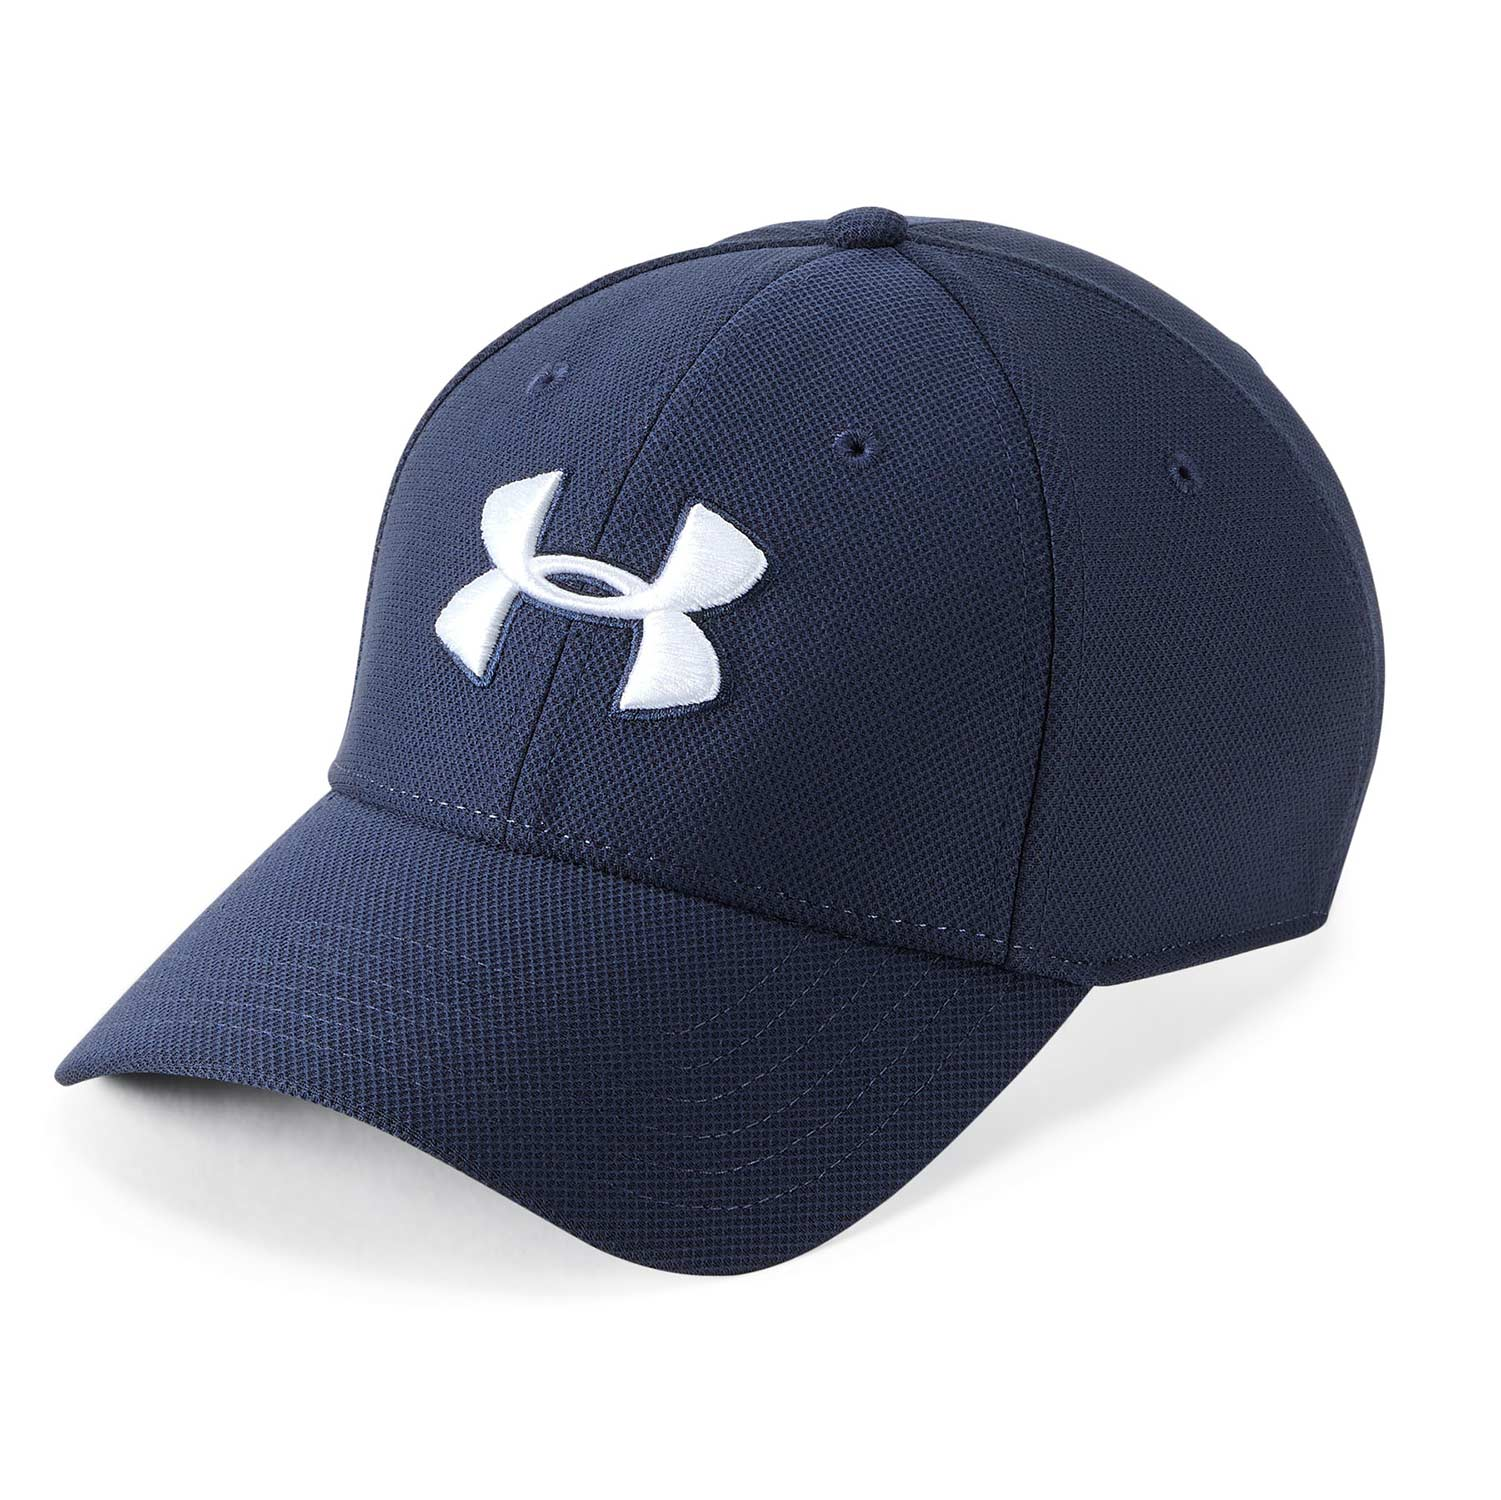 d4f58e75e57 Under Armour Blitzing 3.0 Cap